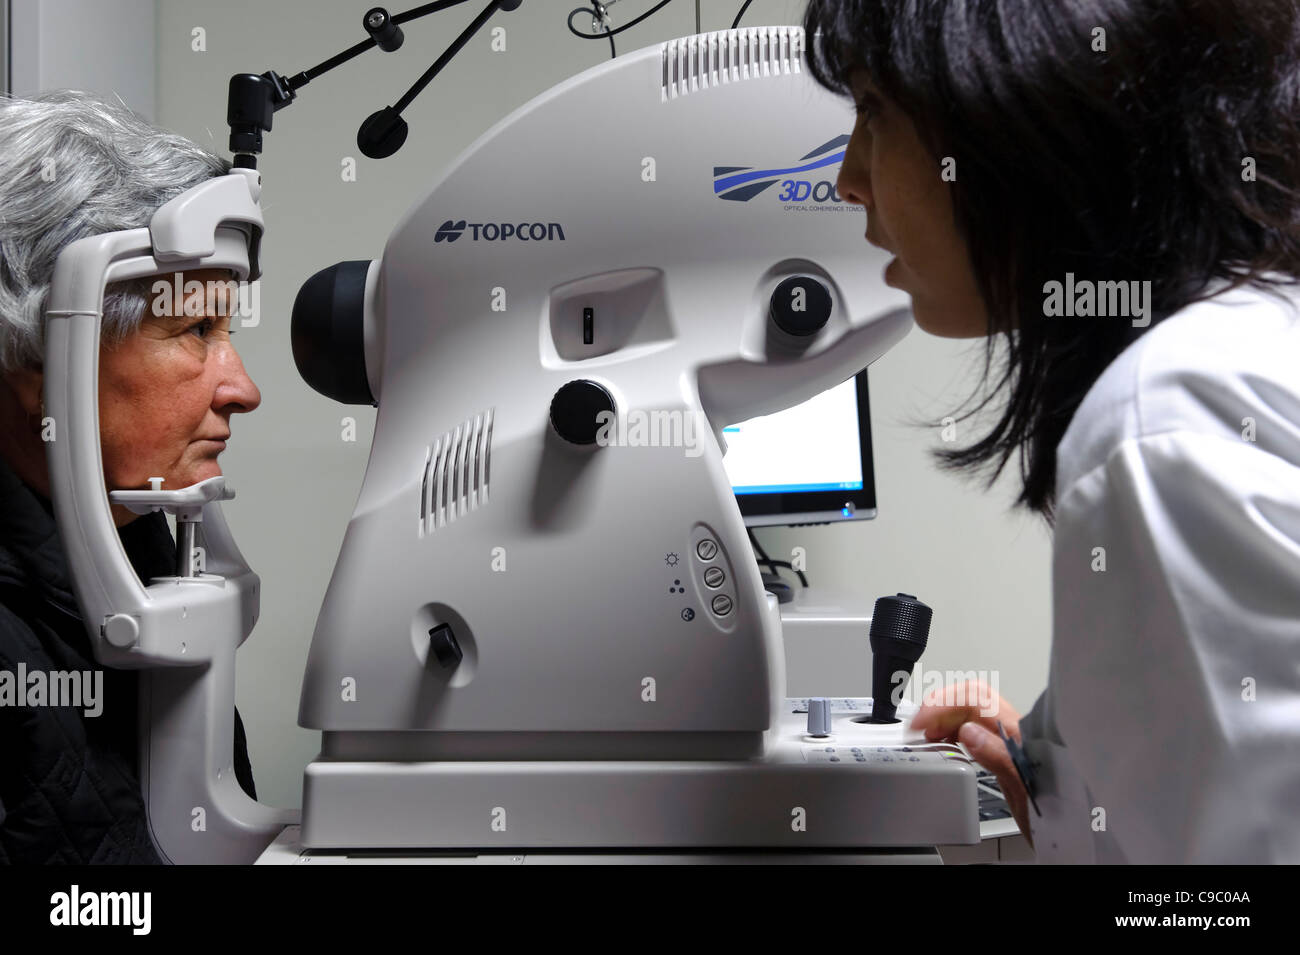 Optical coherence tomography eye exam using a Topcon OCT-1000 medical equipment - Stock Image